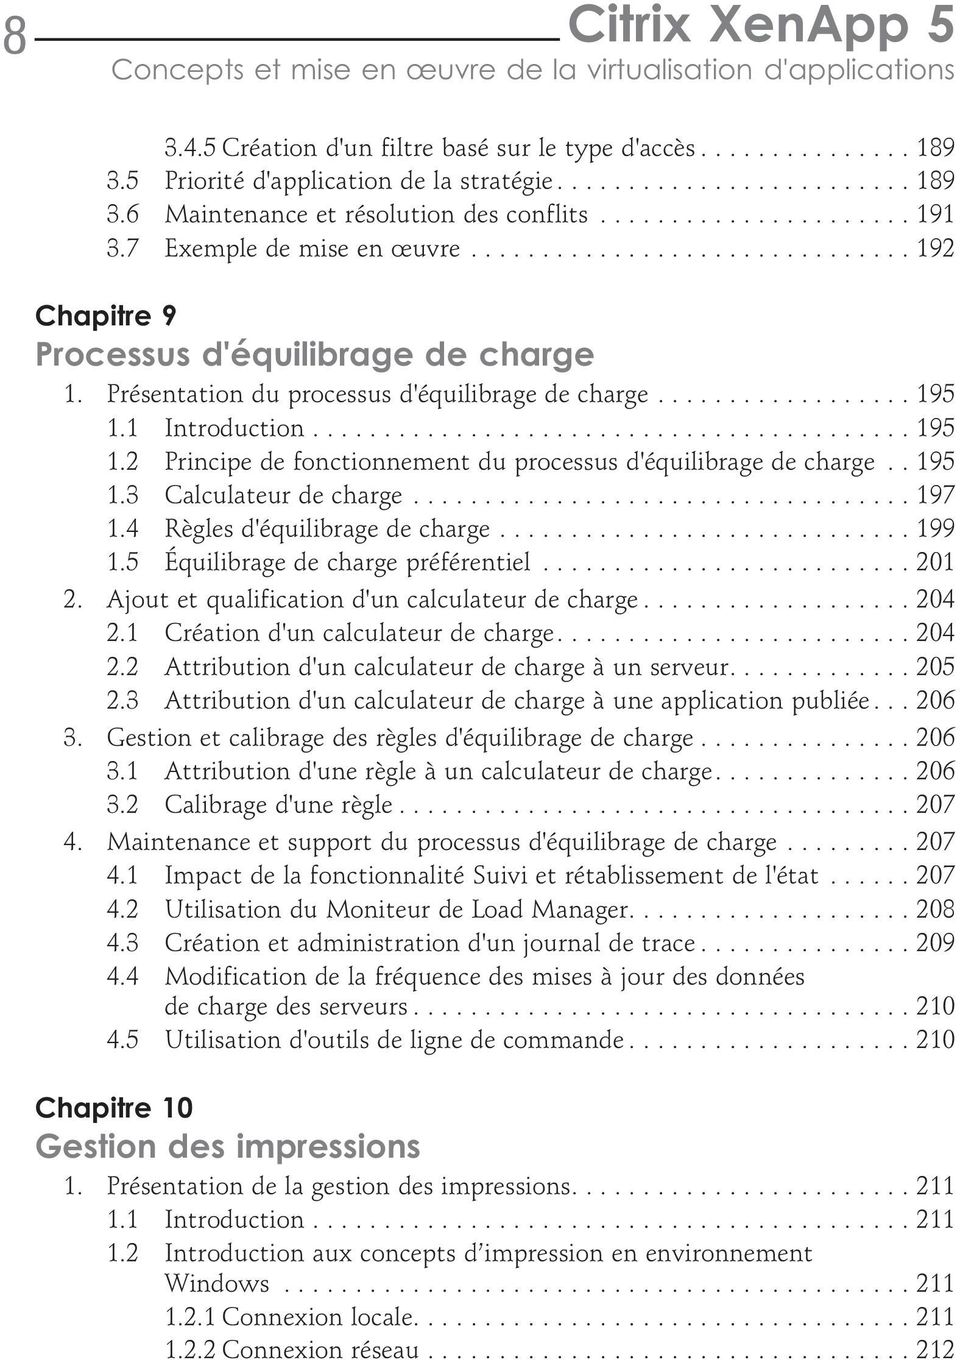 1 Introduction...195 1.2 Principe de fonctionnement du processus d'équilibrage de charge.. 195 1.3 Calculateur de charge...197 1.4 Règles d'équilibrage de charge...199 1.